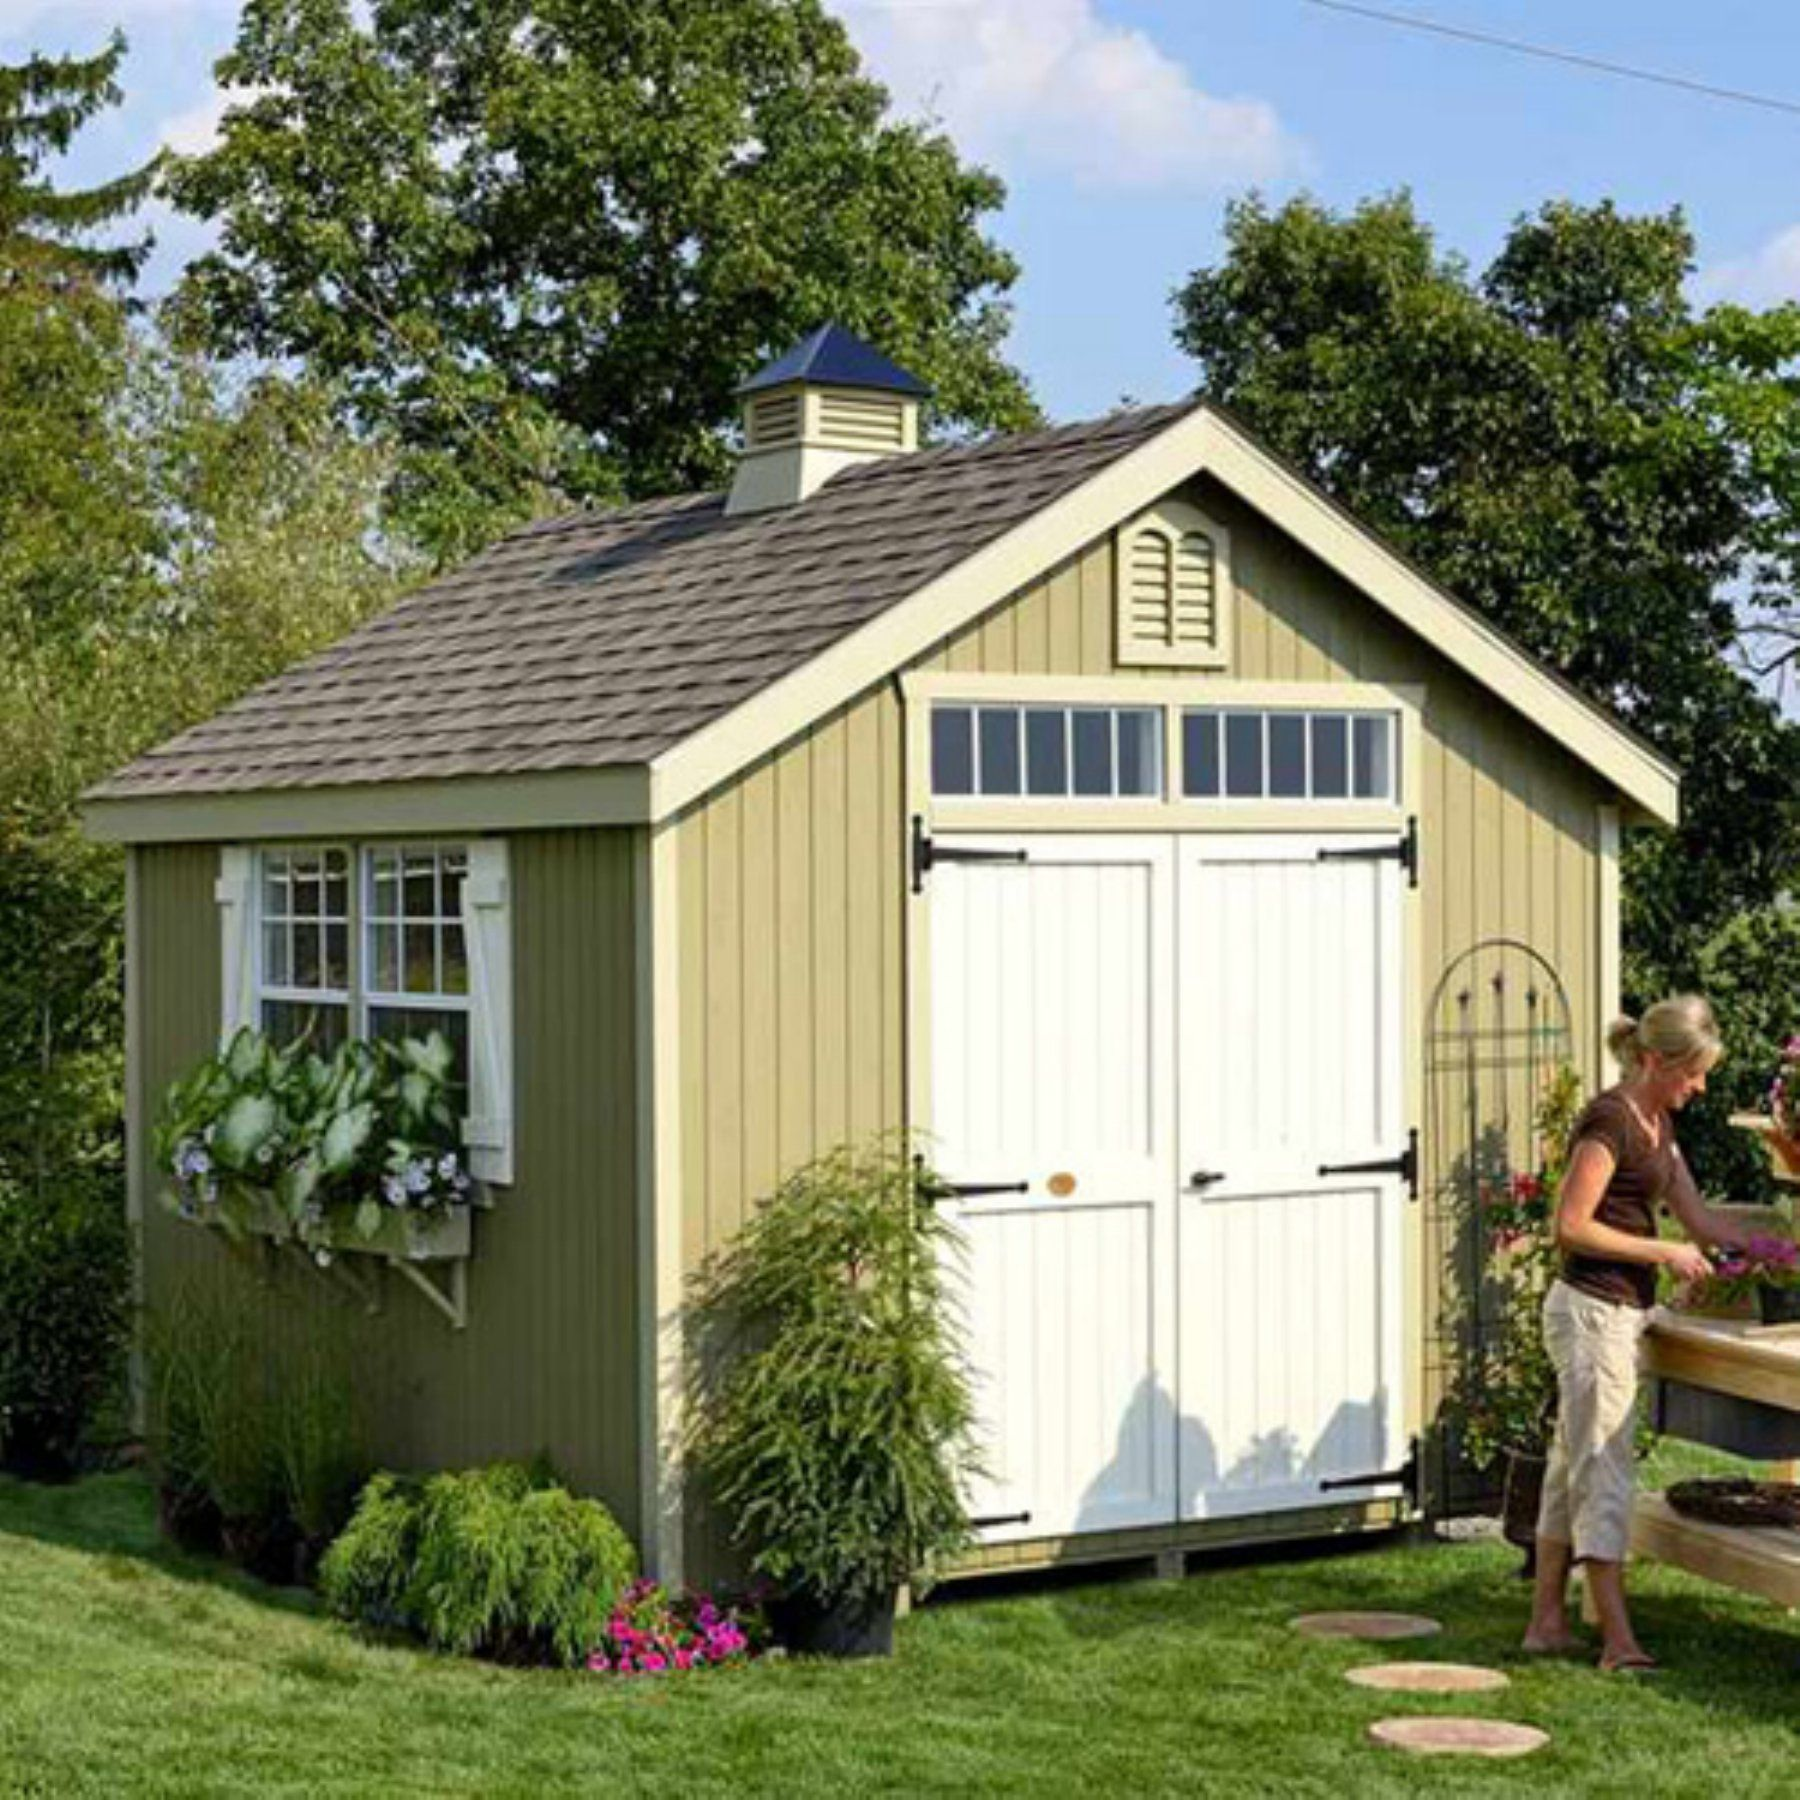 Williamsburg Colonial Panelized Garden Shed 10X12 WCGS